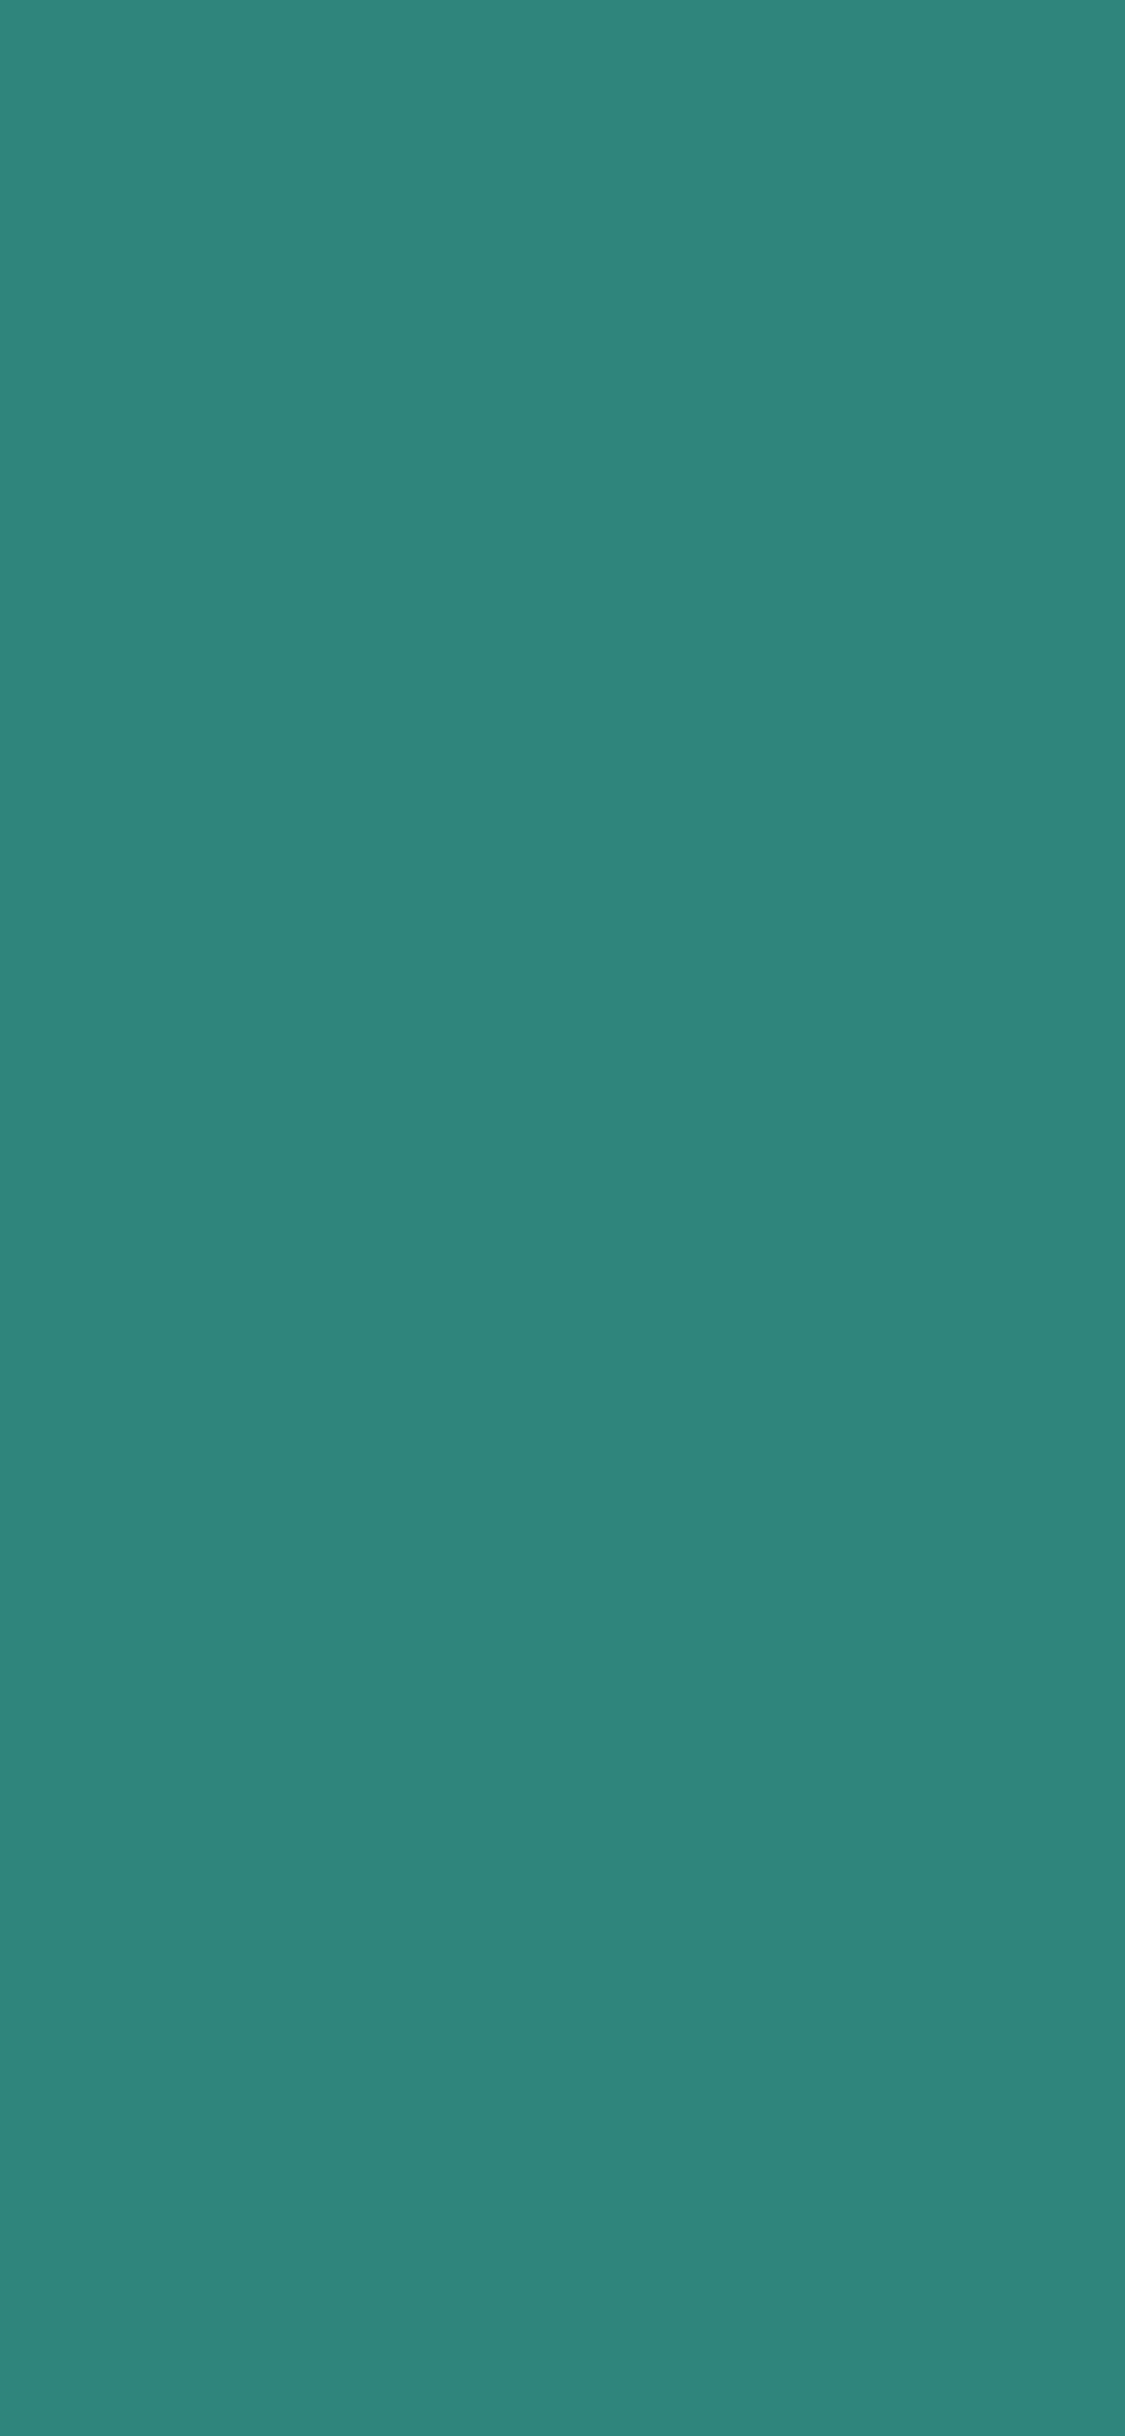 1125x2436 Celadon Green Solid Color Background